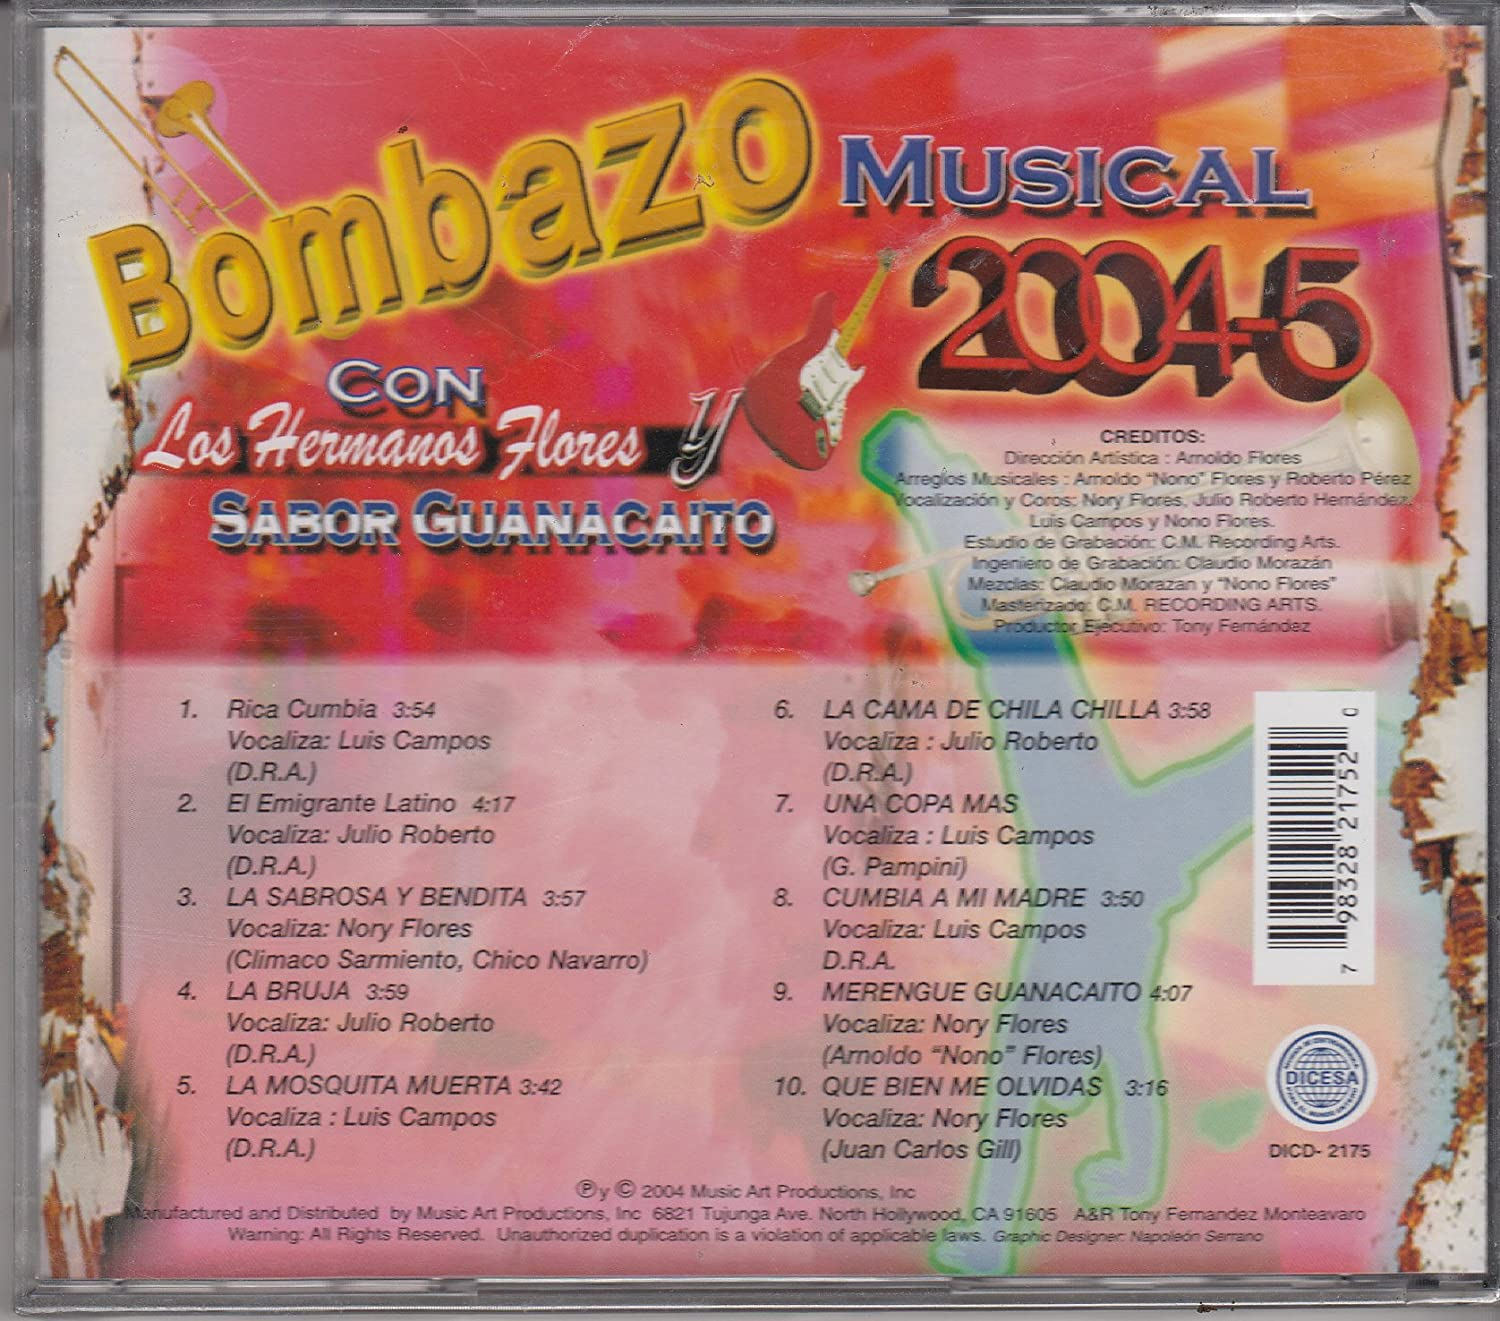 Los Hermanos Flores - Bombazo Musical 2004-5 - Los Hermanos Flores Y Sabor - Amazon.com Music